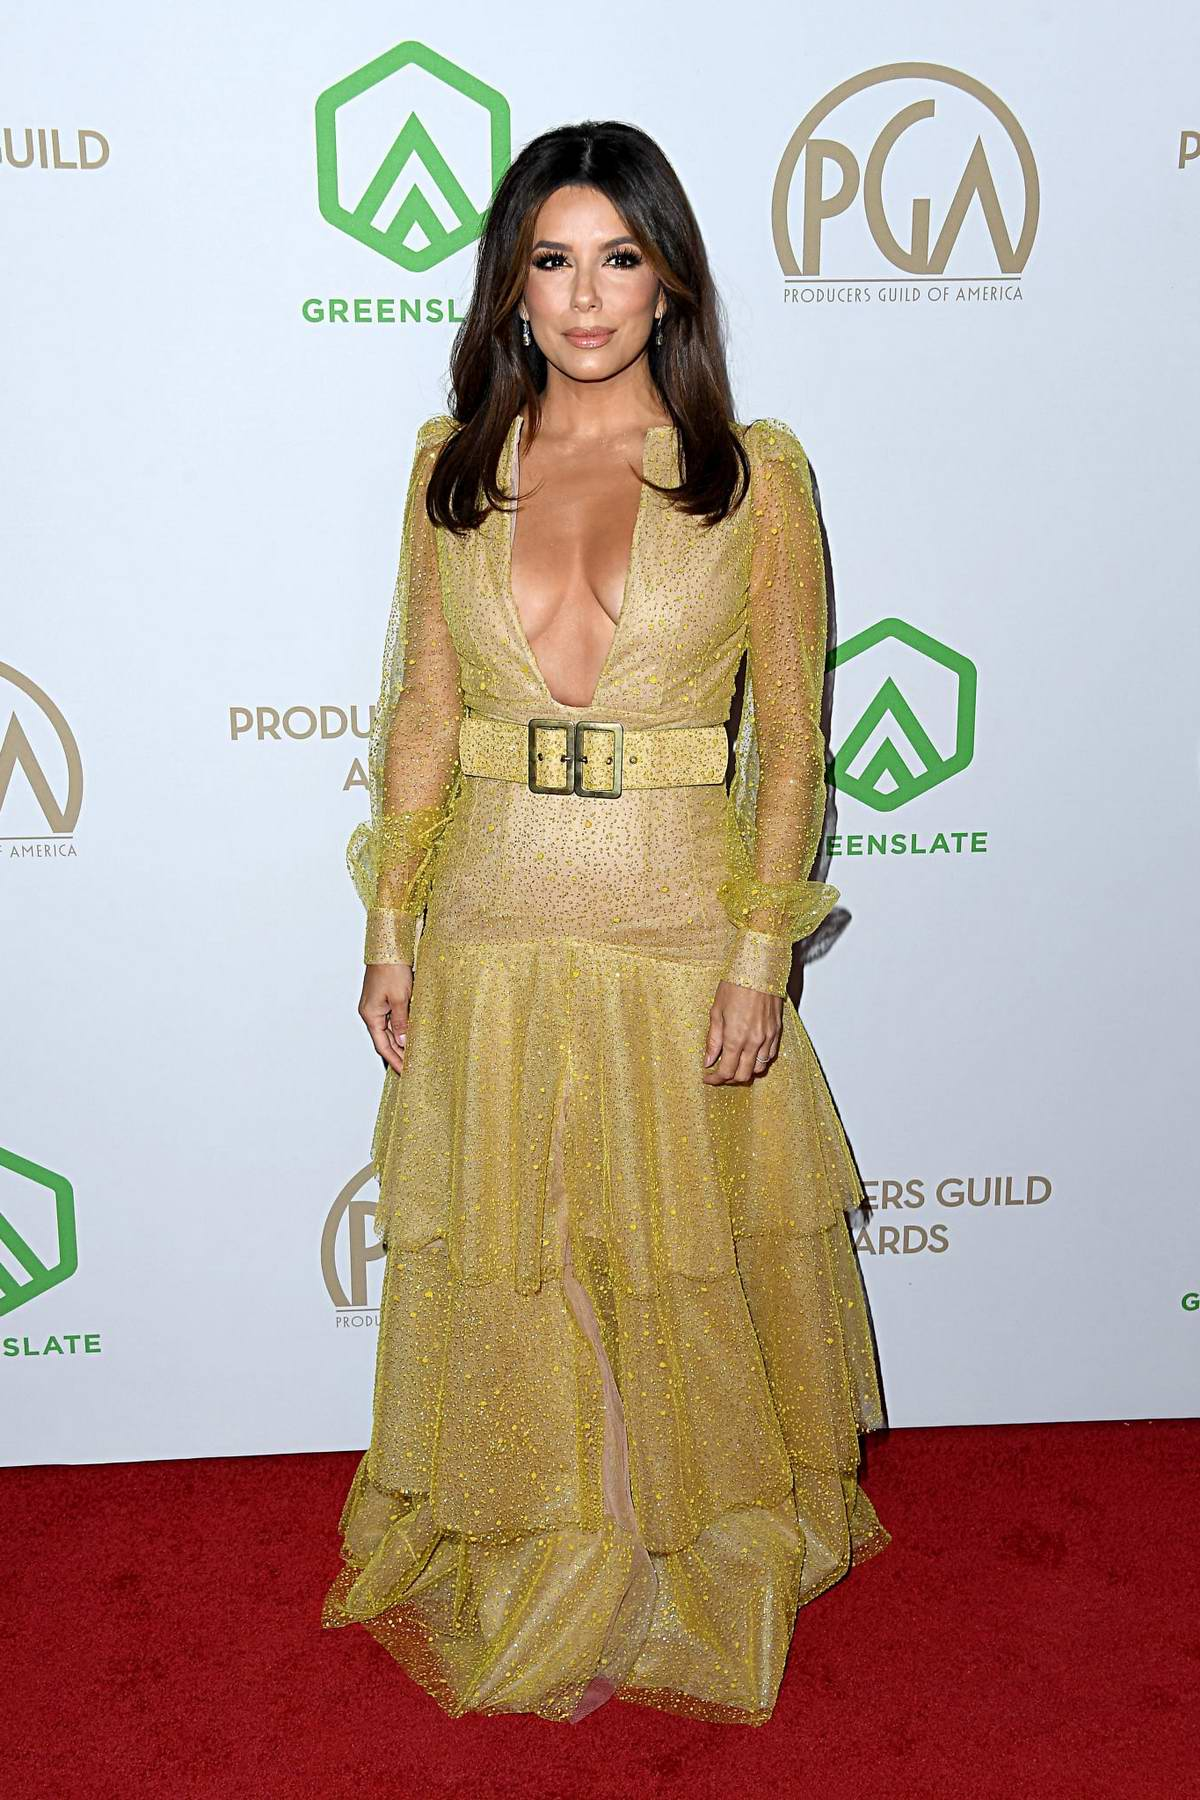 Eva Longoria attends the 31st Annual Producers Guild Awards in Los Angeles